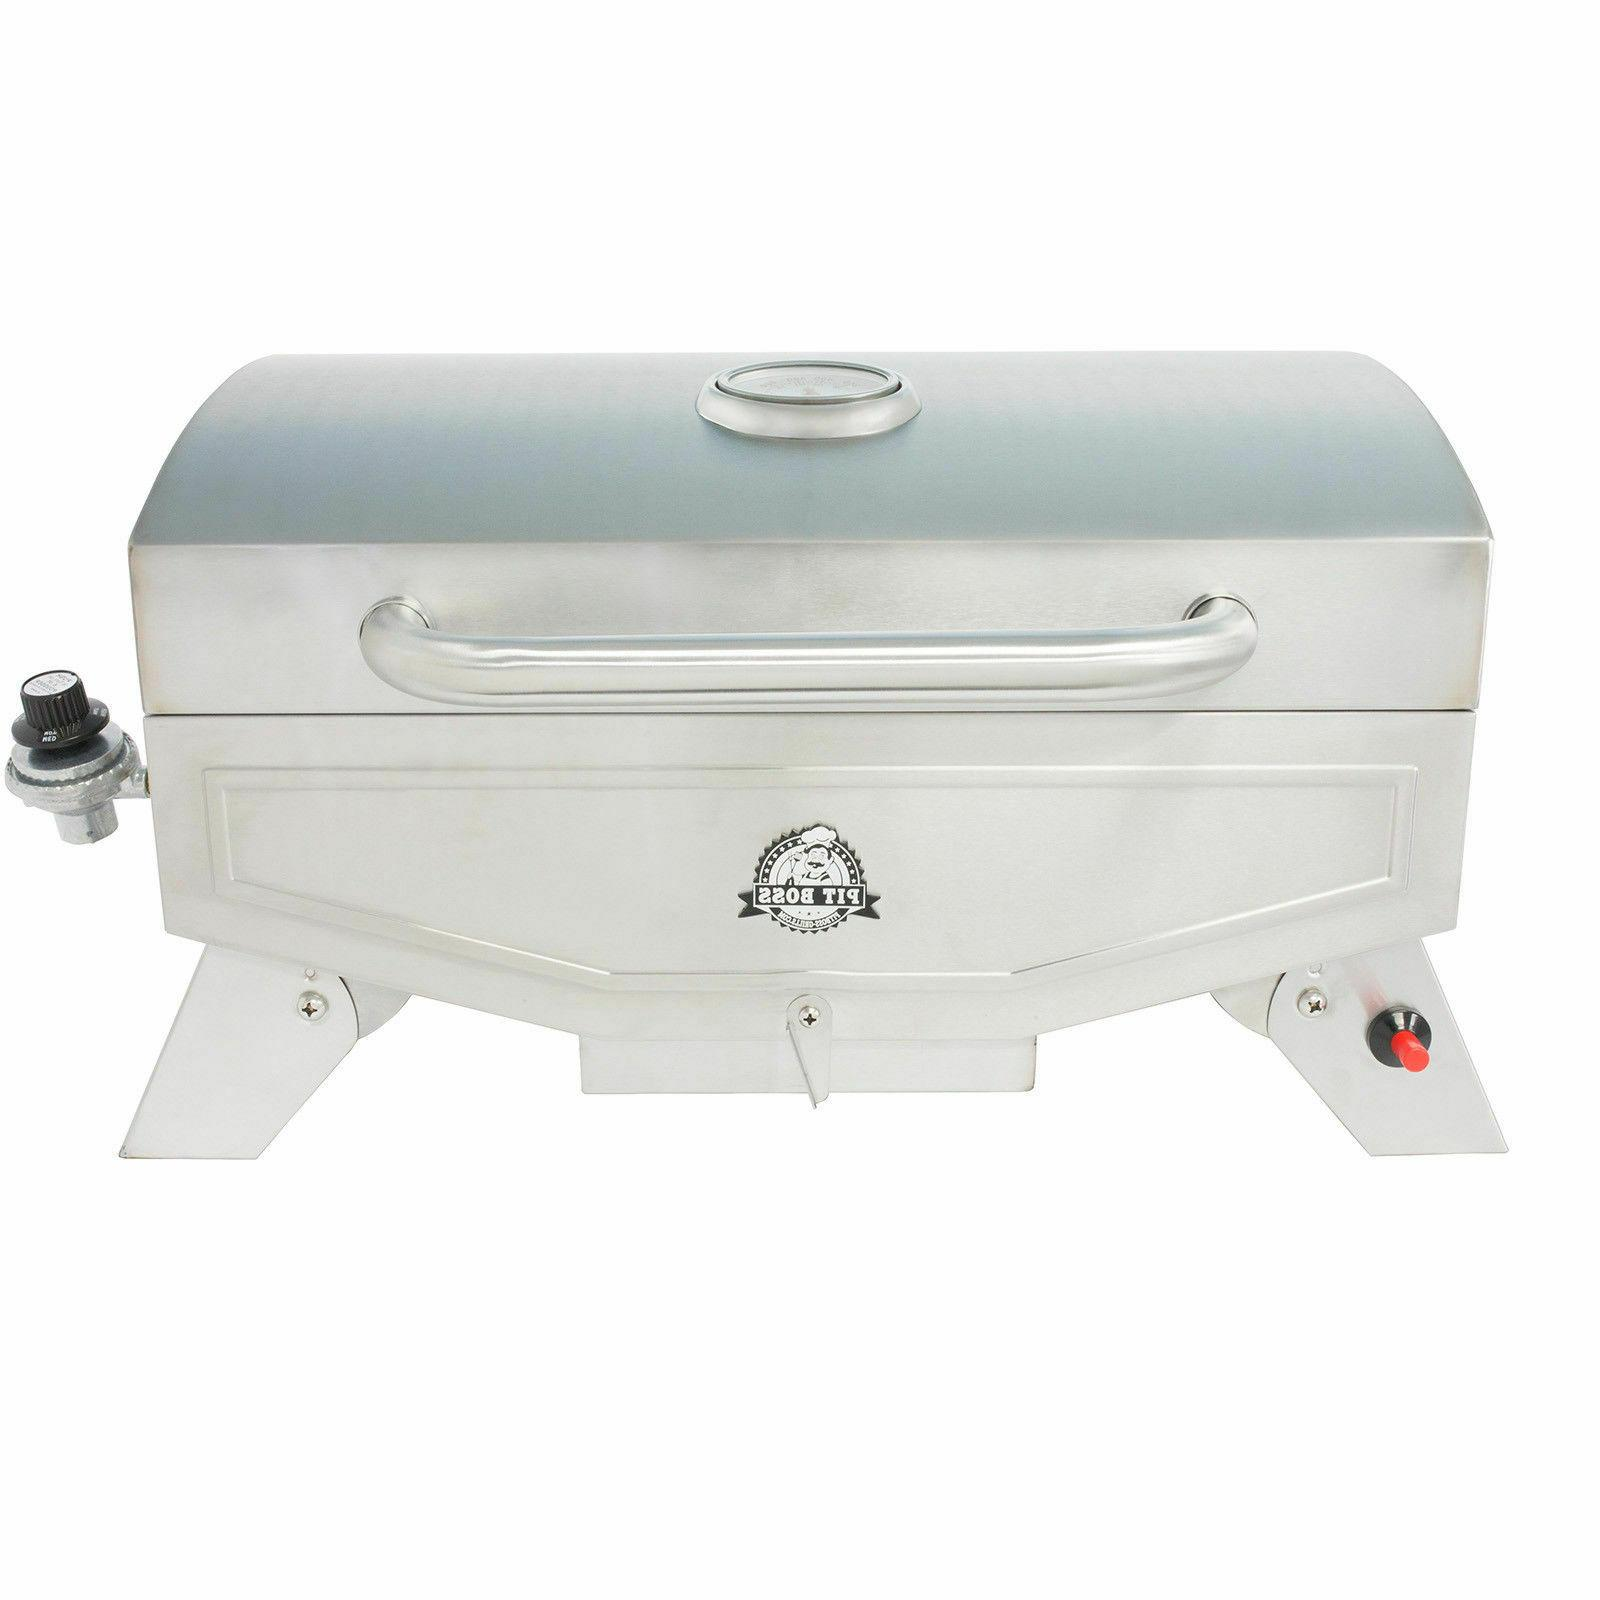 Portable Propane Gas Stainless RV Outdoor Backyard